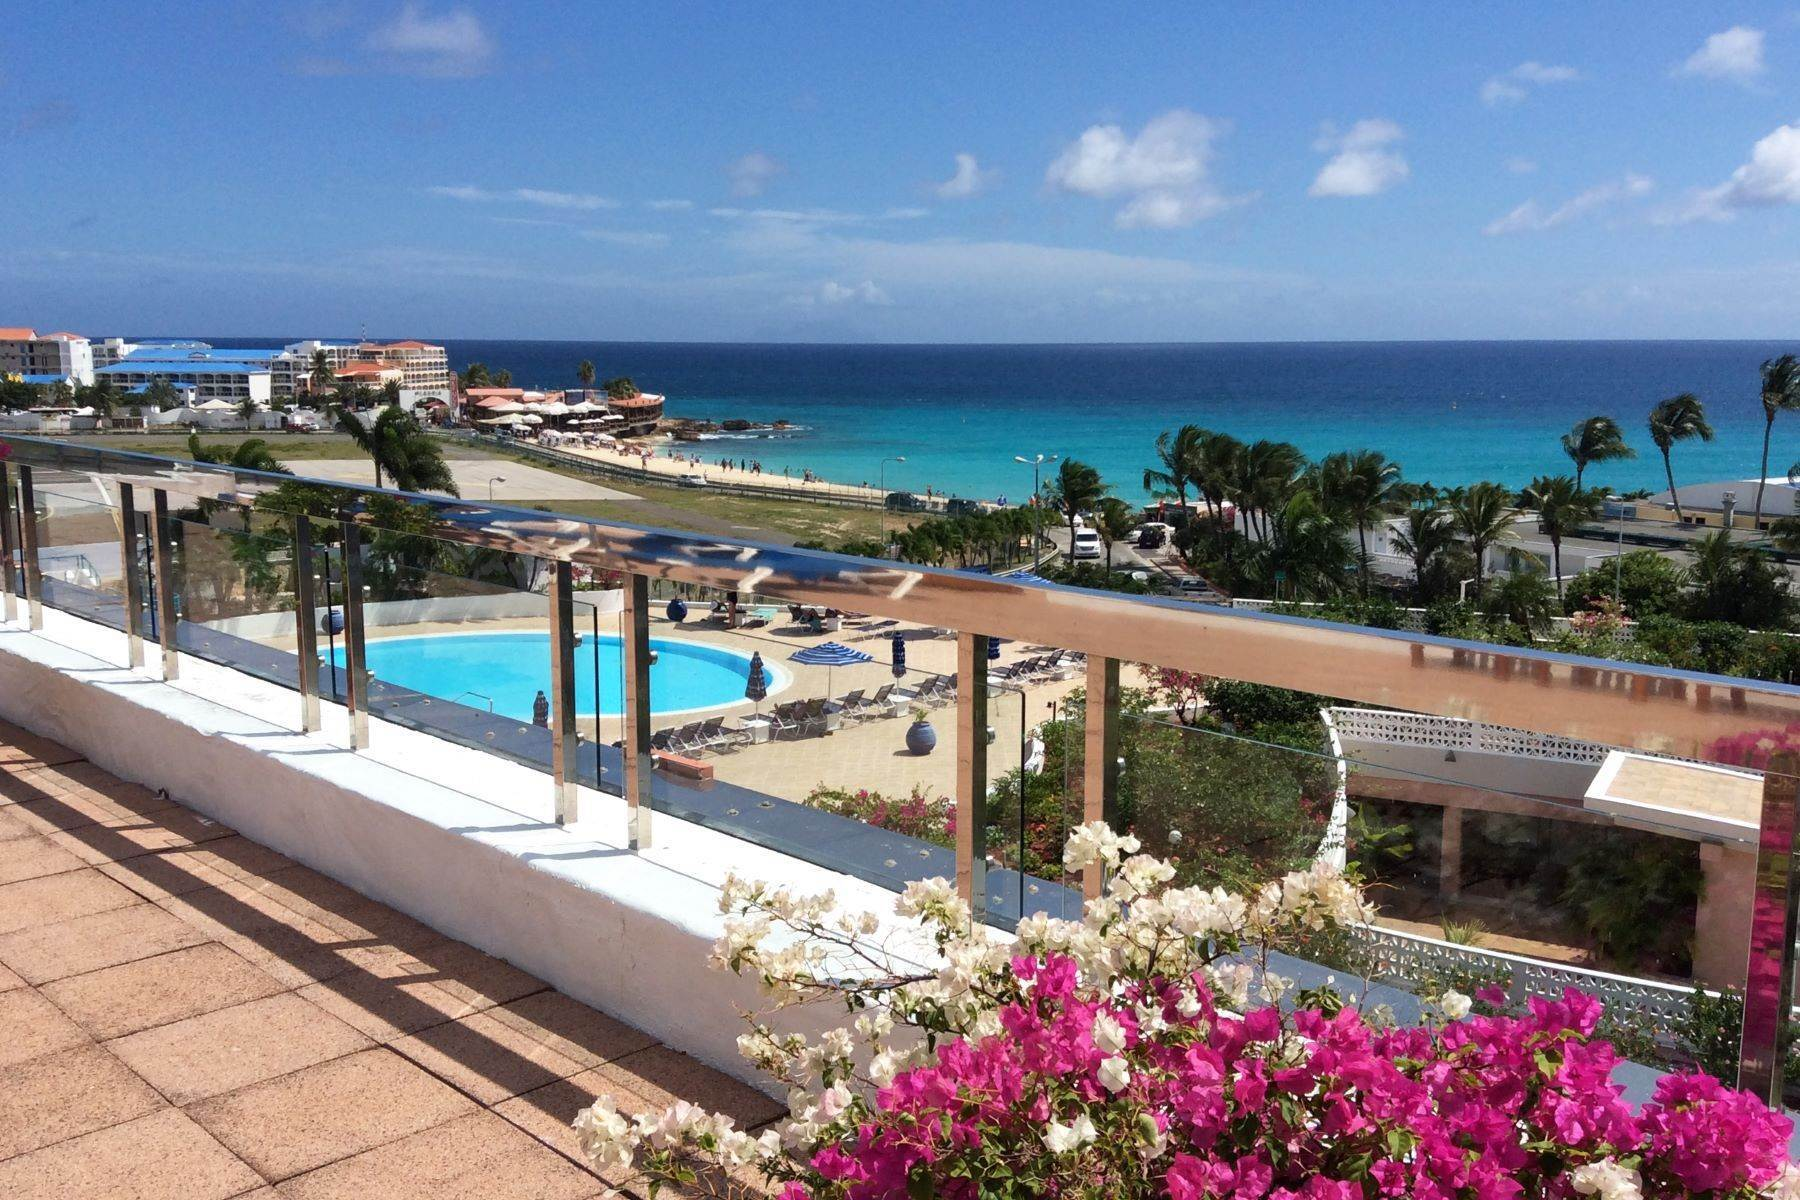 Apartments at La Terrasse Penthouse Maho, St. Maarten